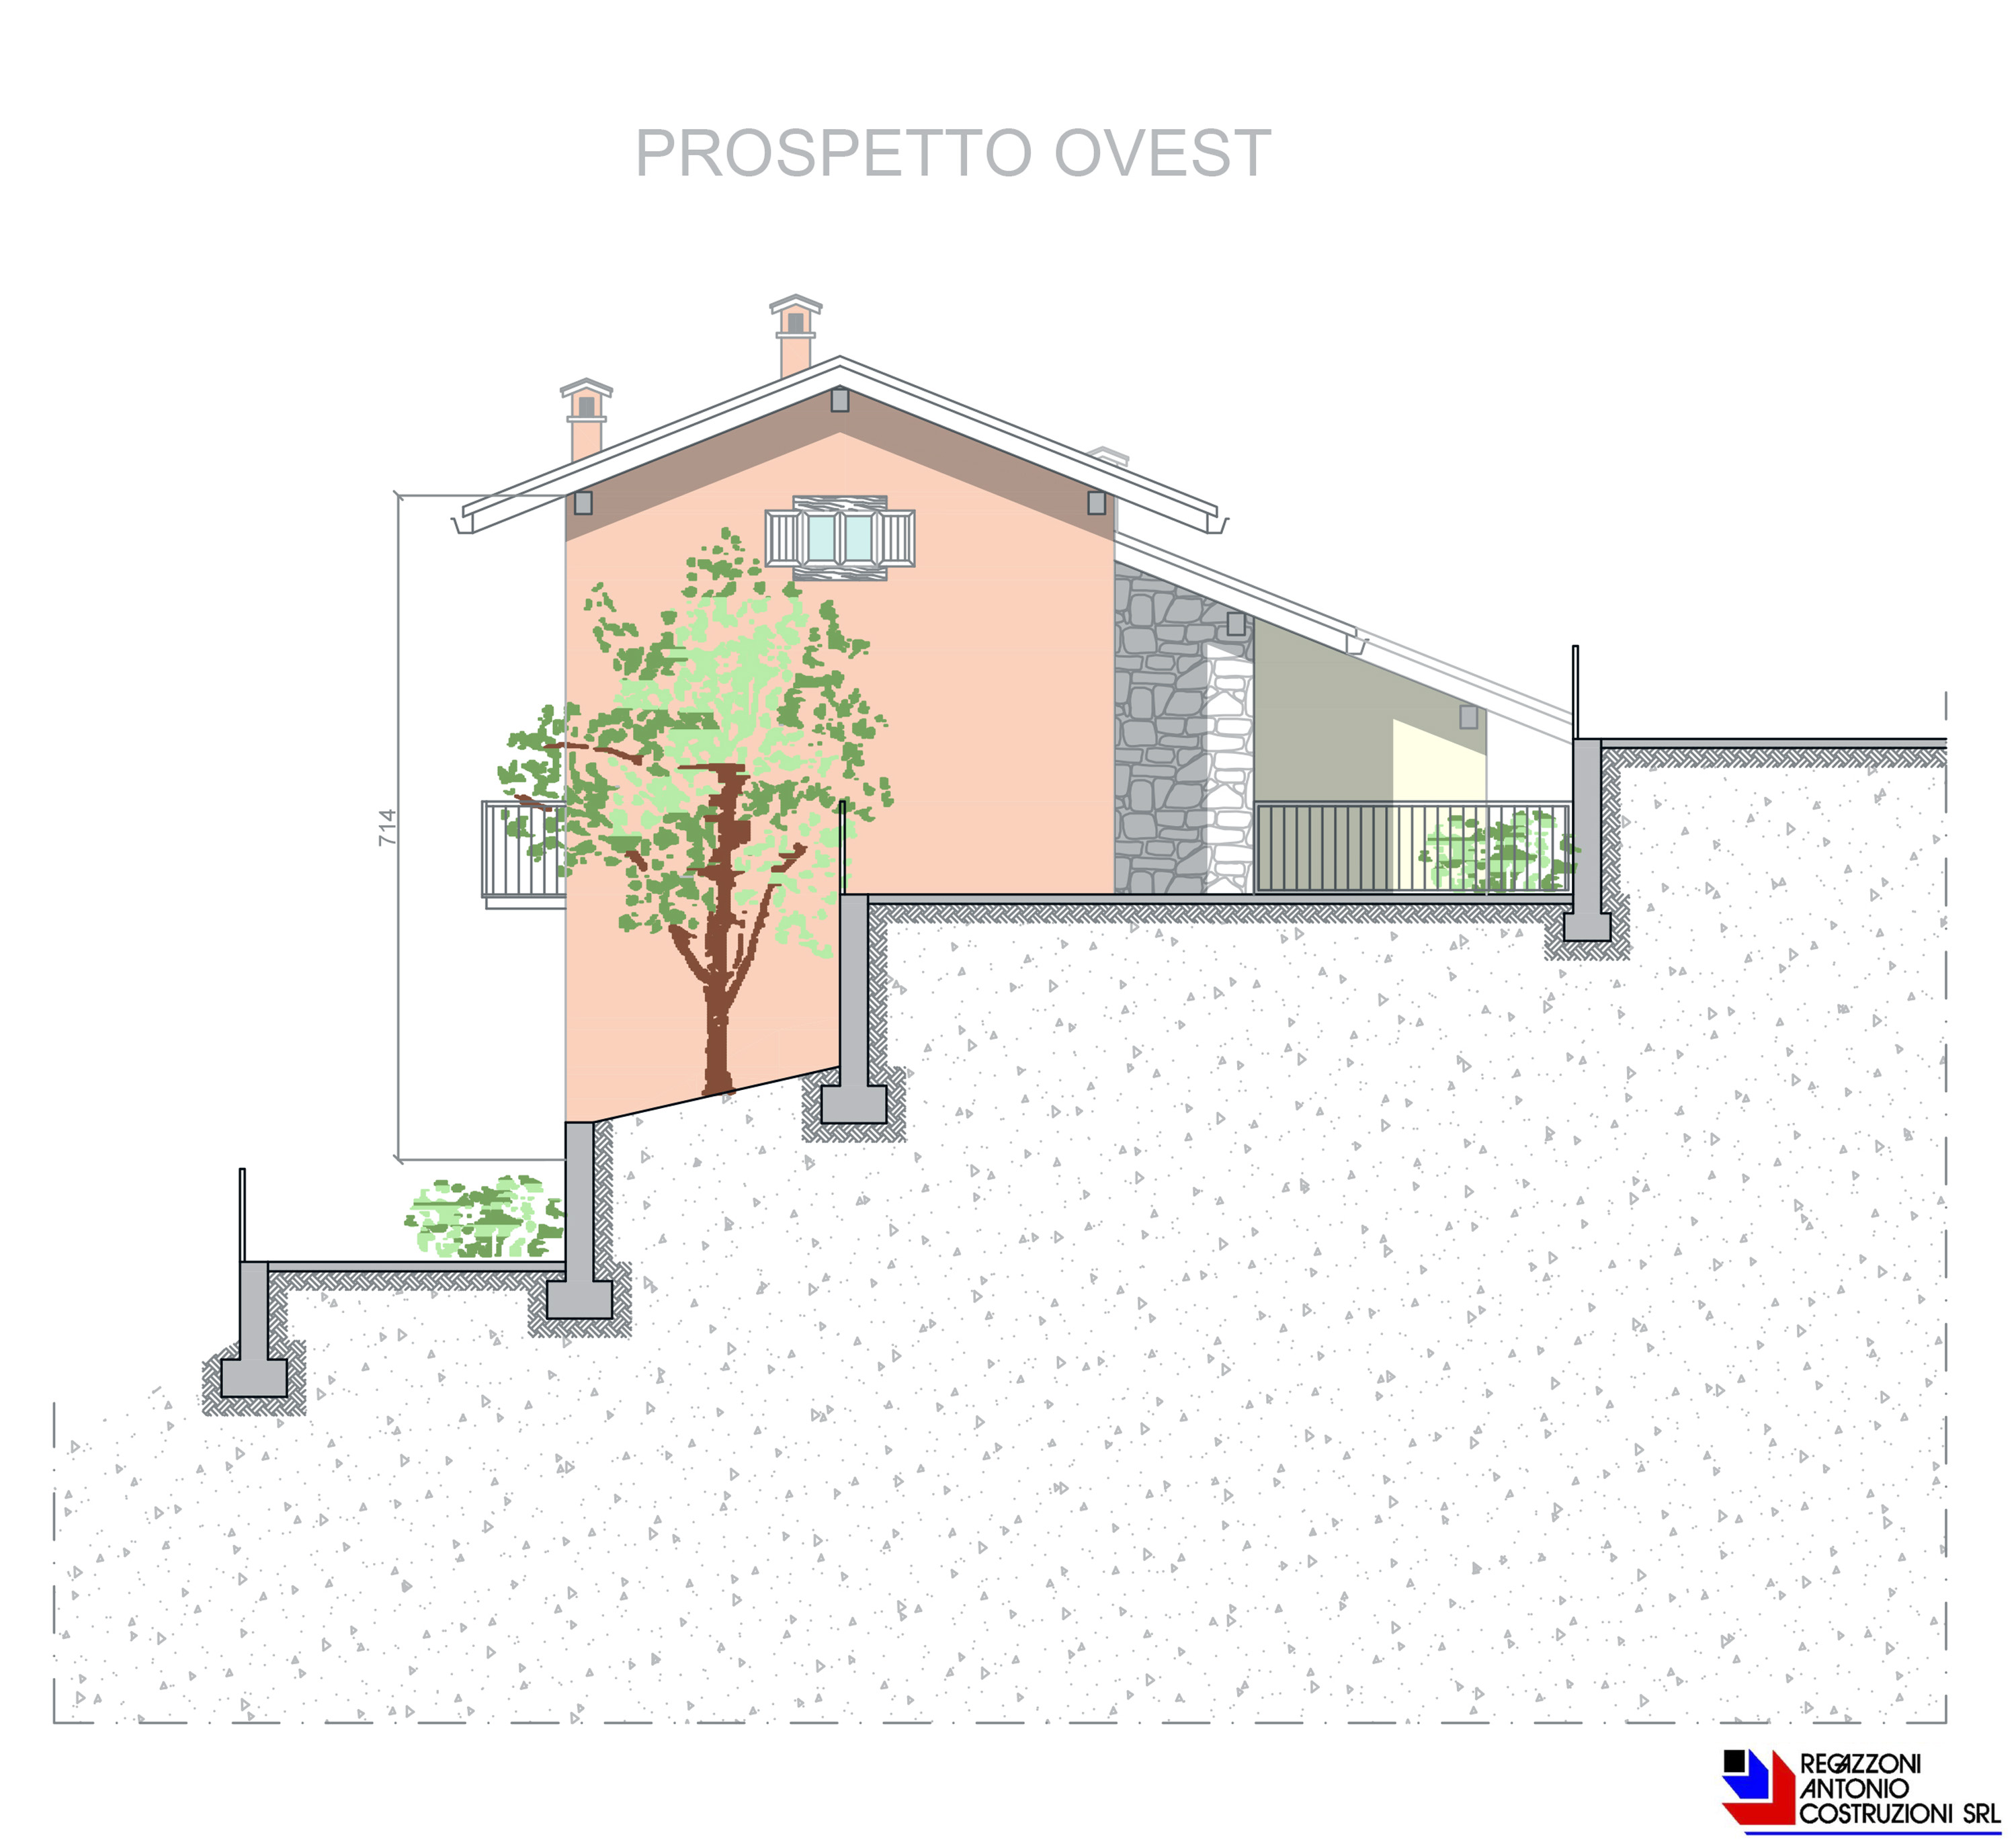 Prospetto ovest specifico Lotto E - scala 1a100